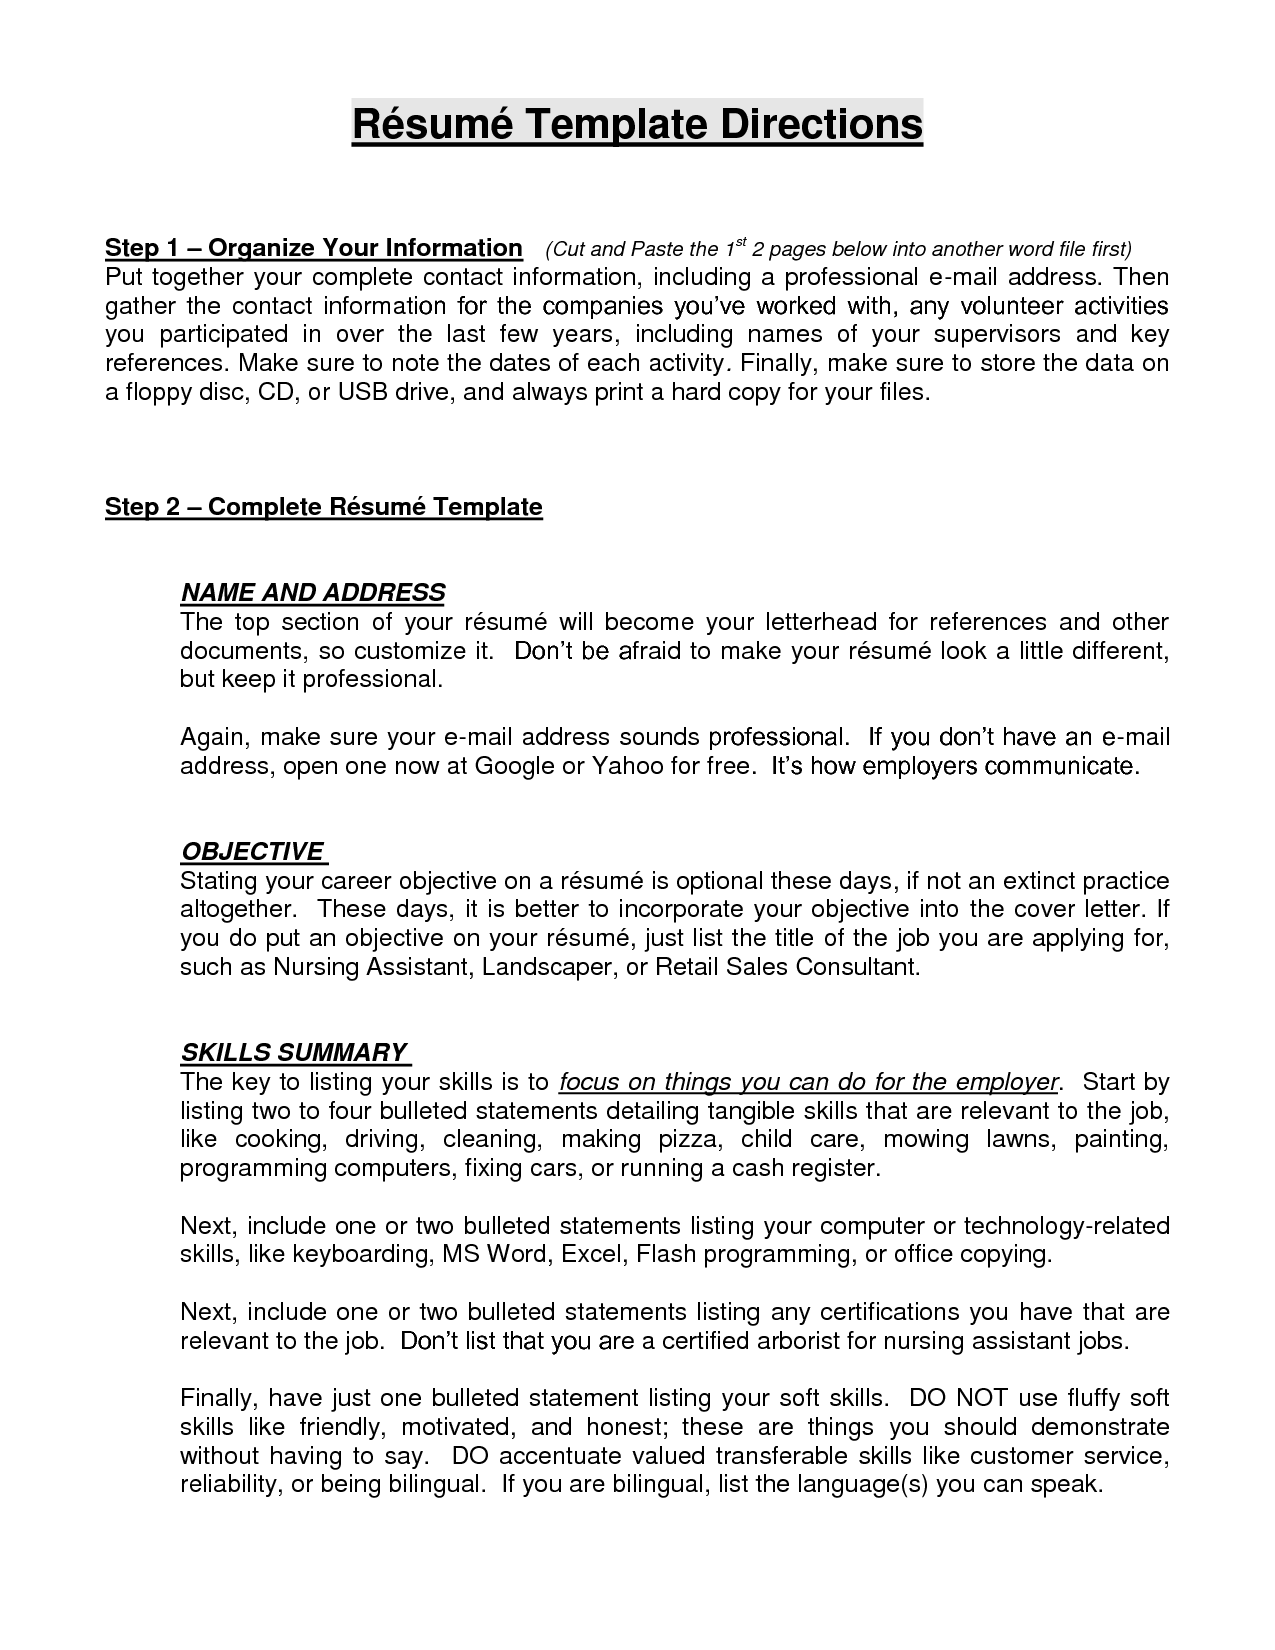 sample resume objective. Resume Example. Resume CV Cover Letter